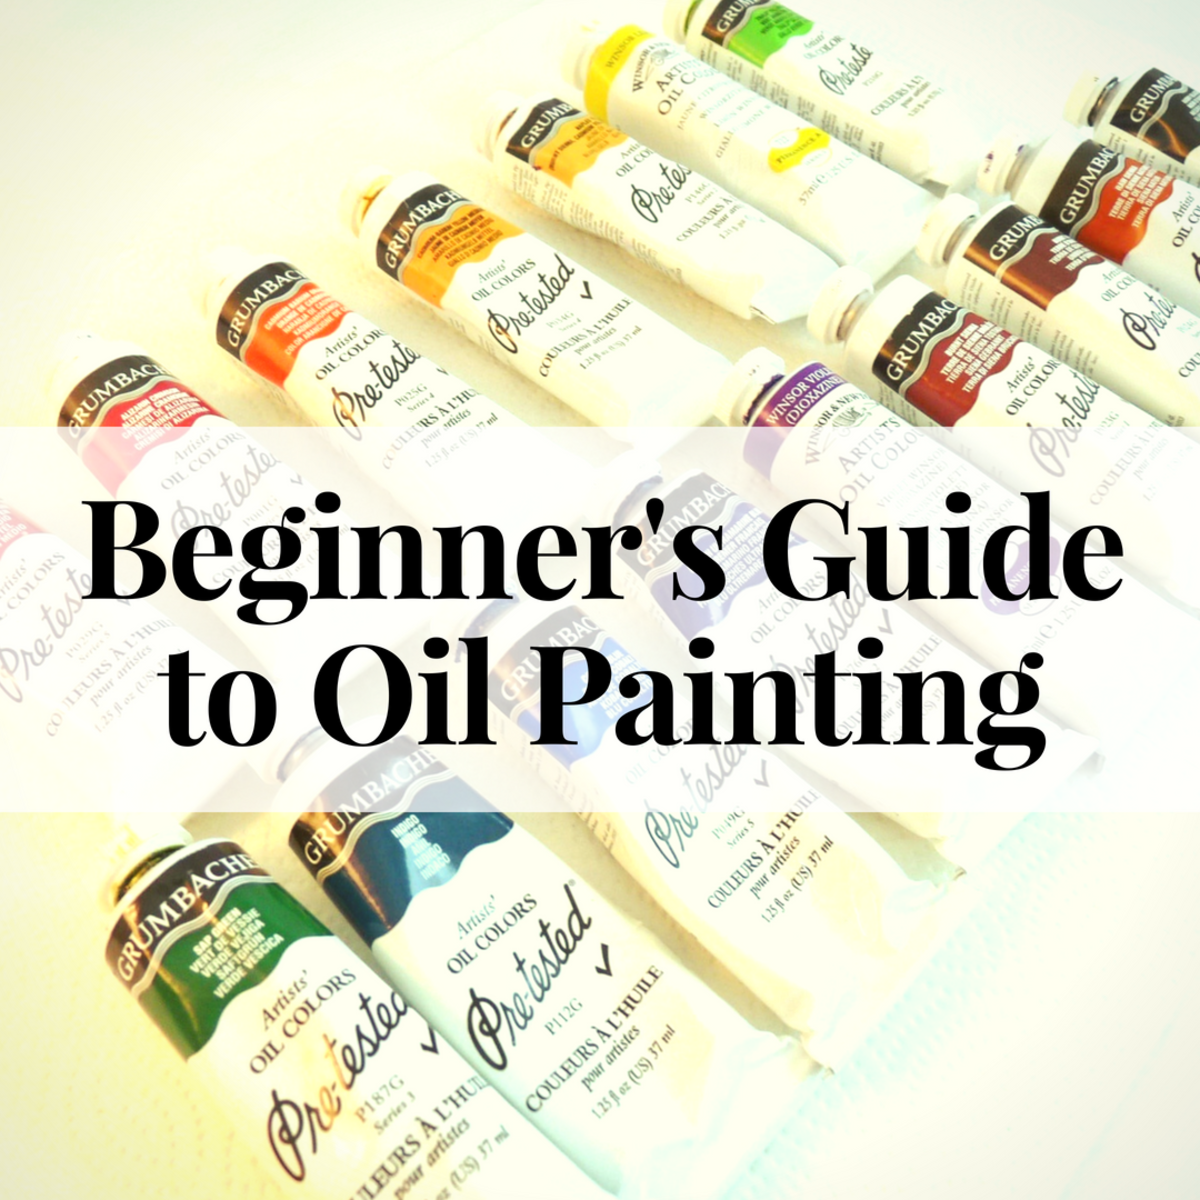 A Beginner's Guide to Oil Painting Supplies